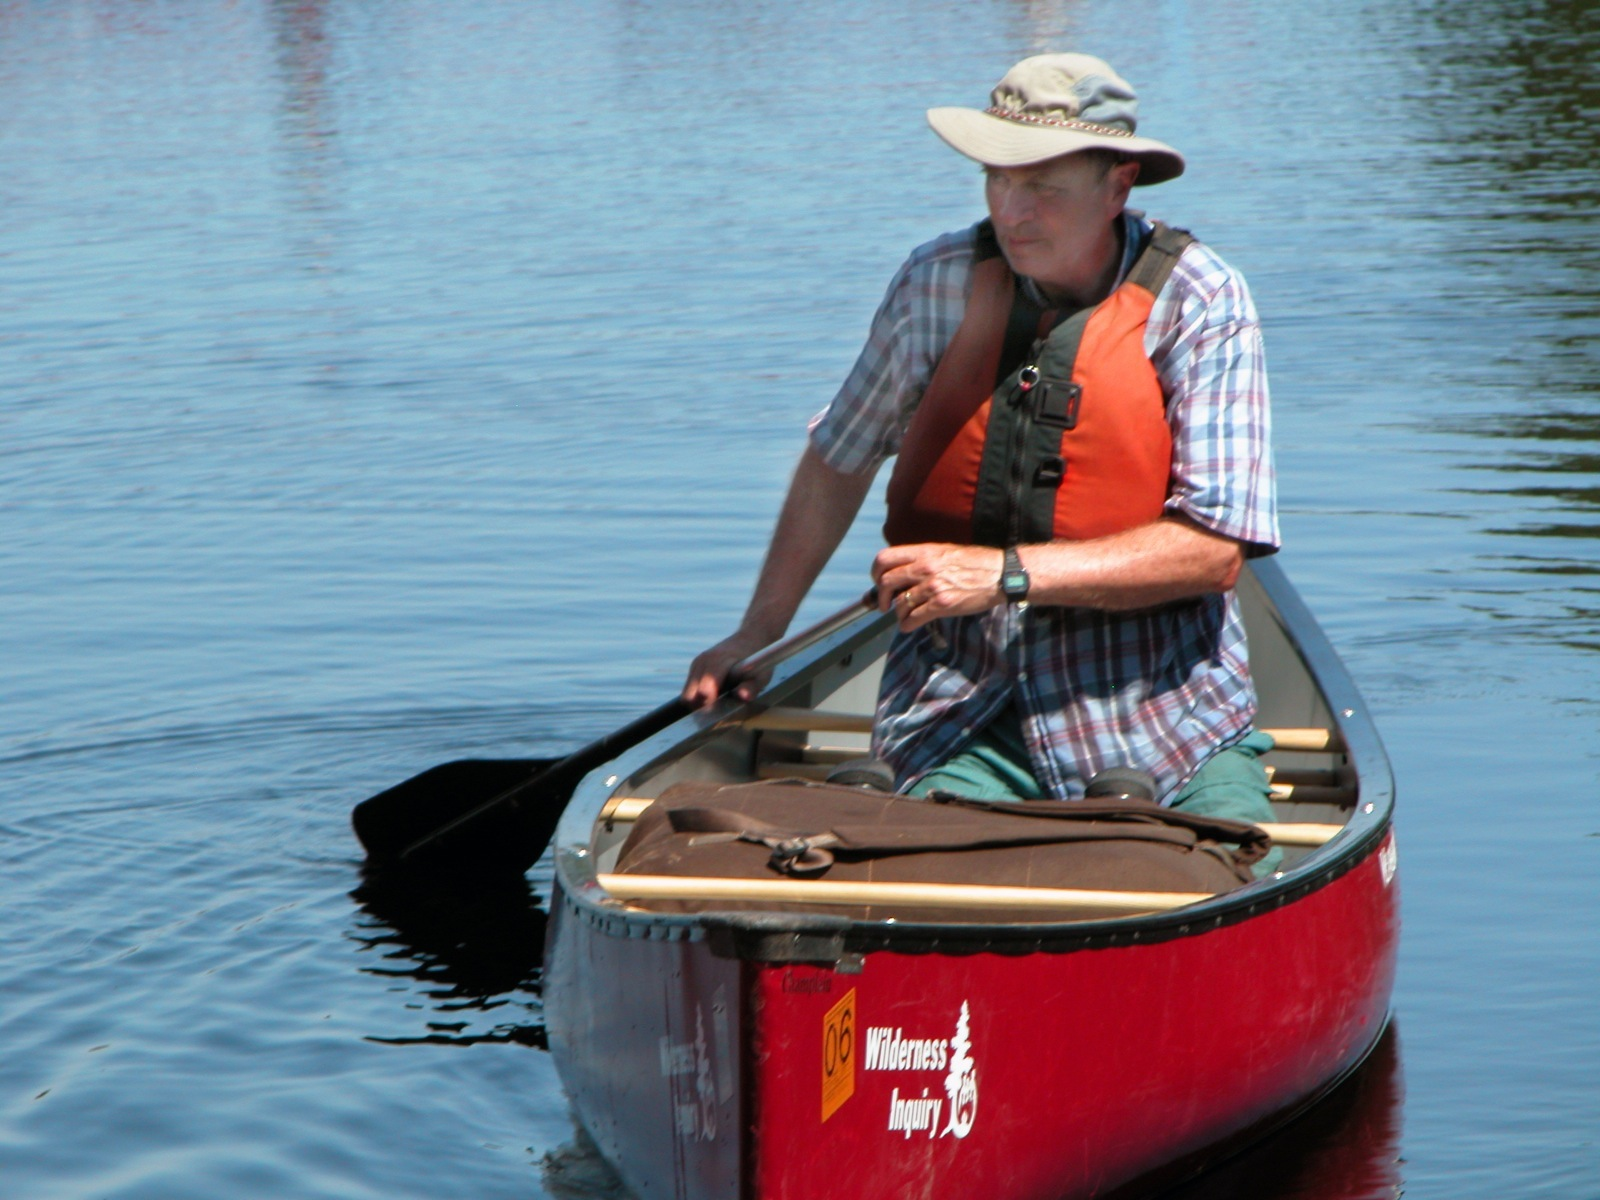 A man paddles a red canoe solo on calm water in the Wabakimi Provincial Park.